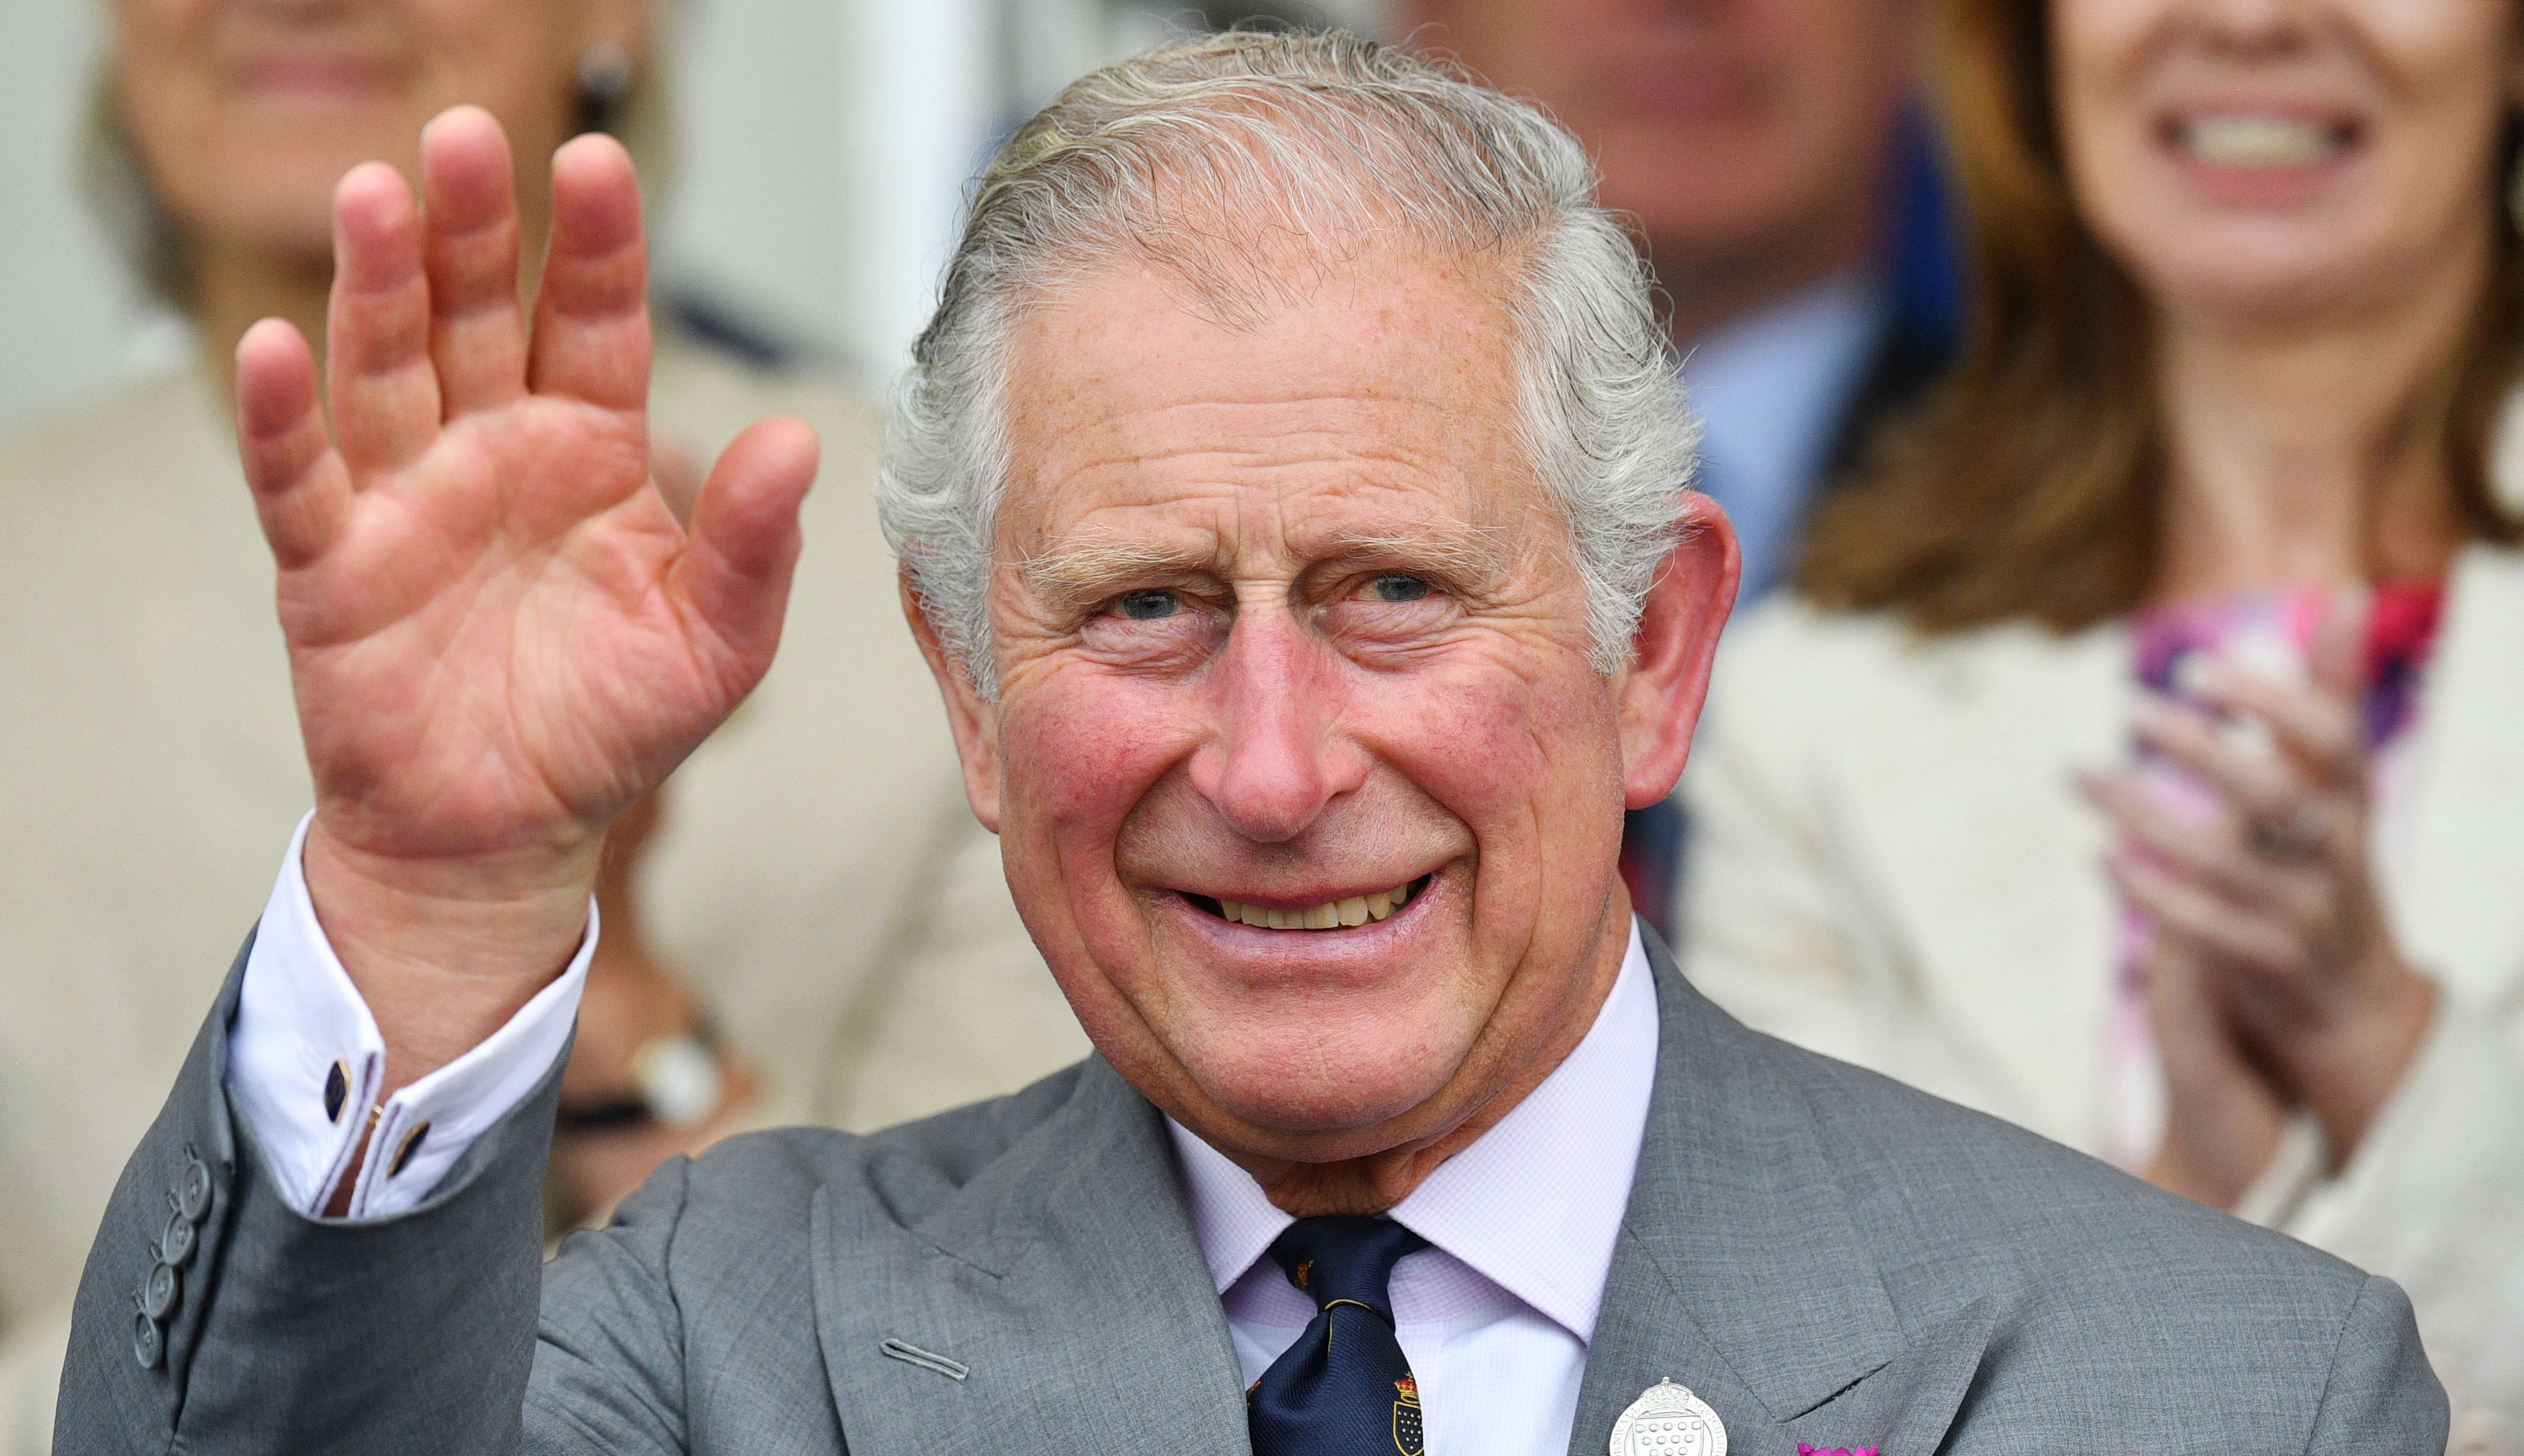 Prince Charles Wears Kilt For Fun Royal Outing With The Scouts